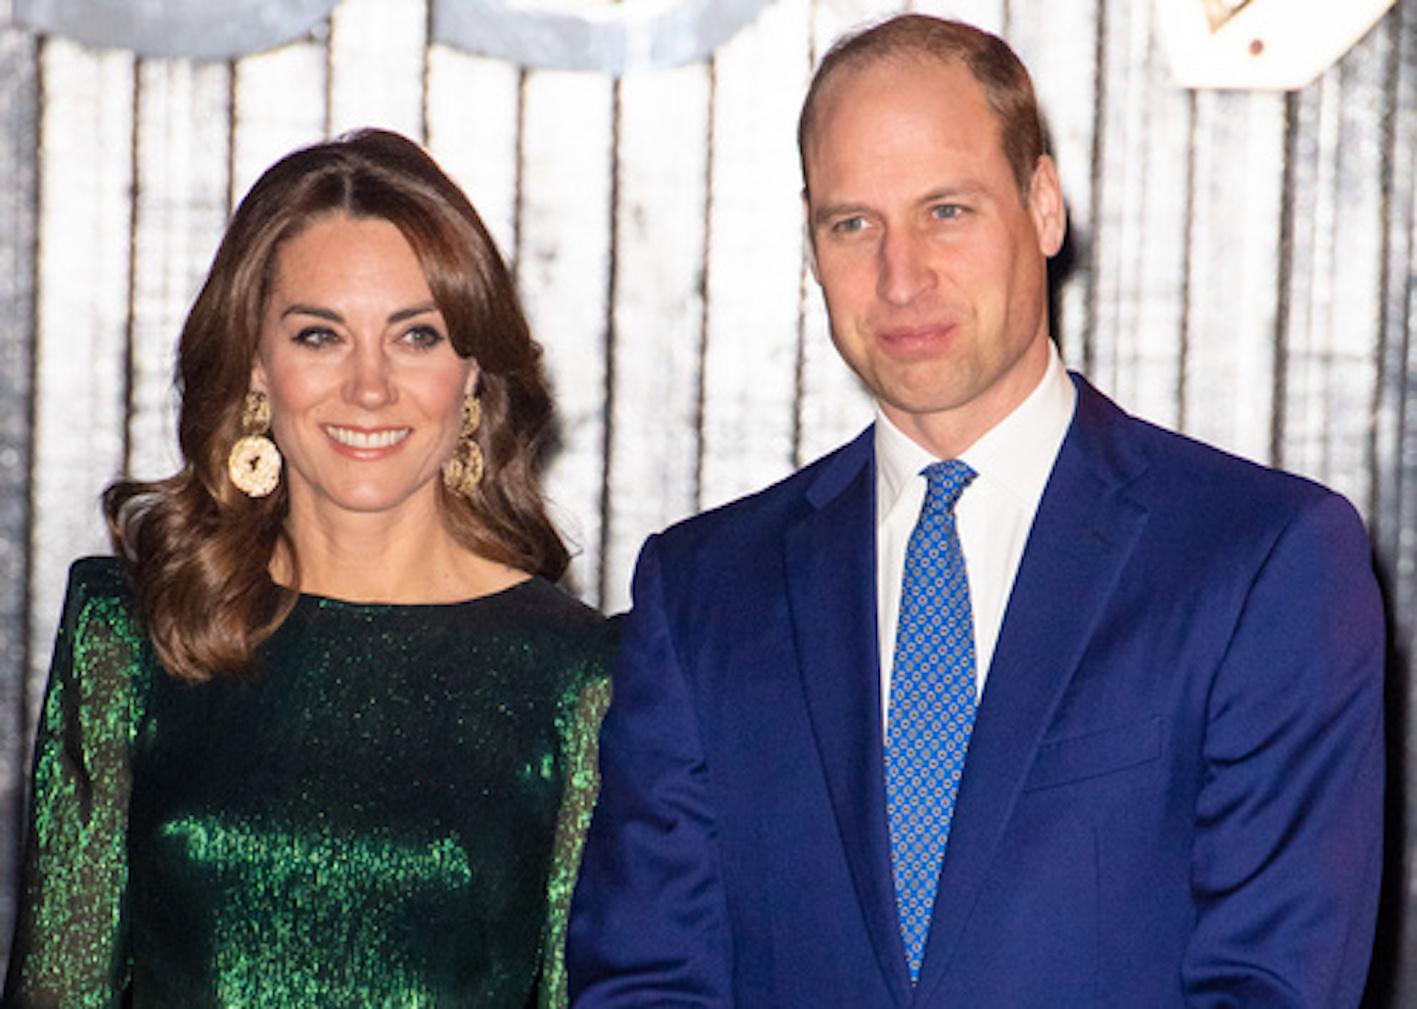 Prince William 'jokes about passing on coronavirus and suggests some people are panicking'